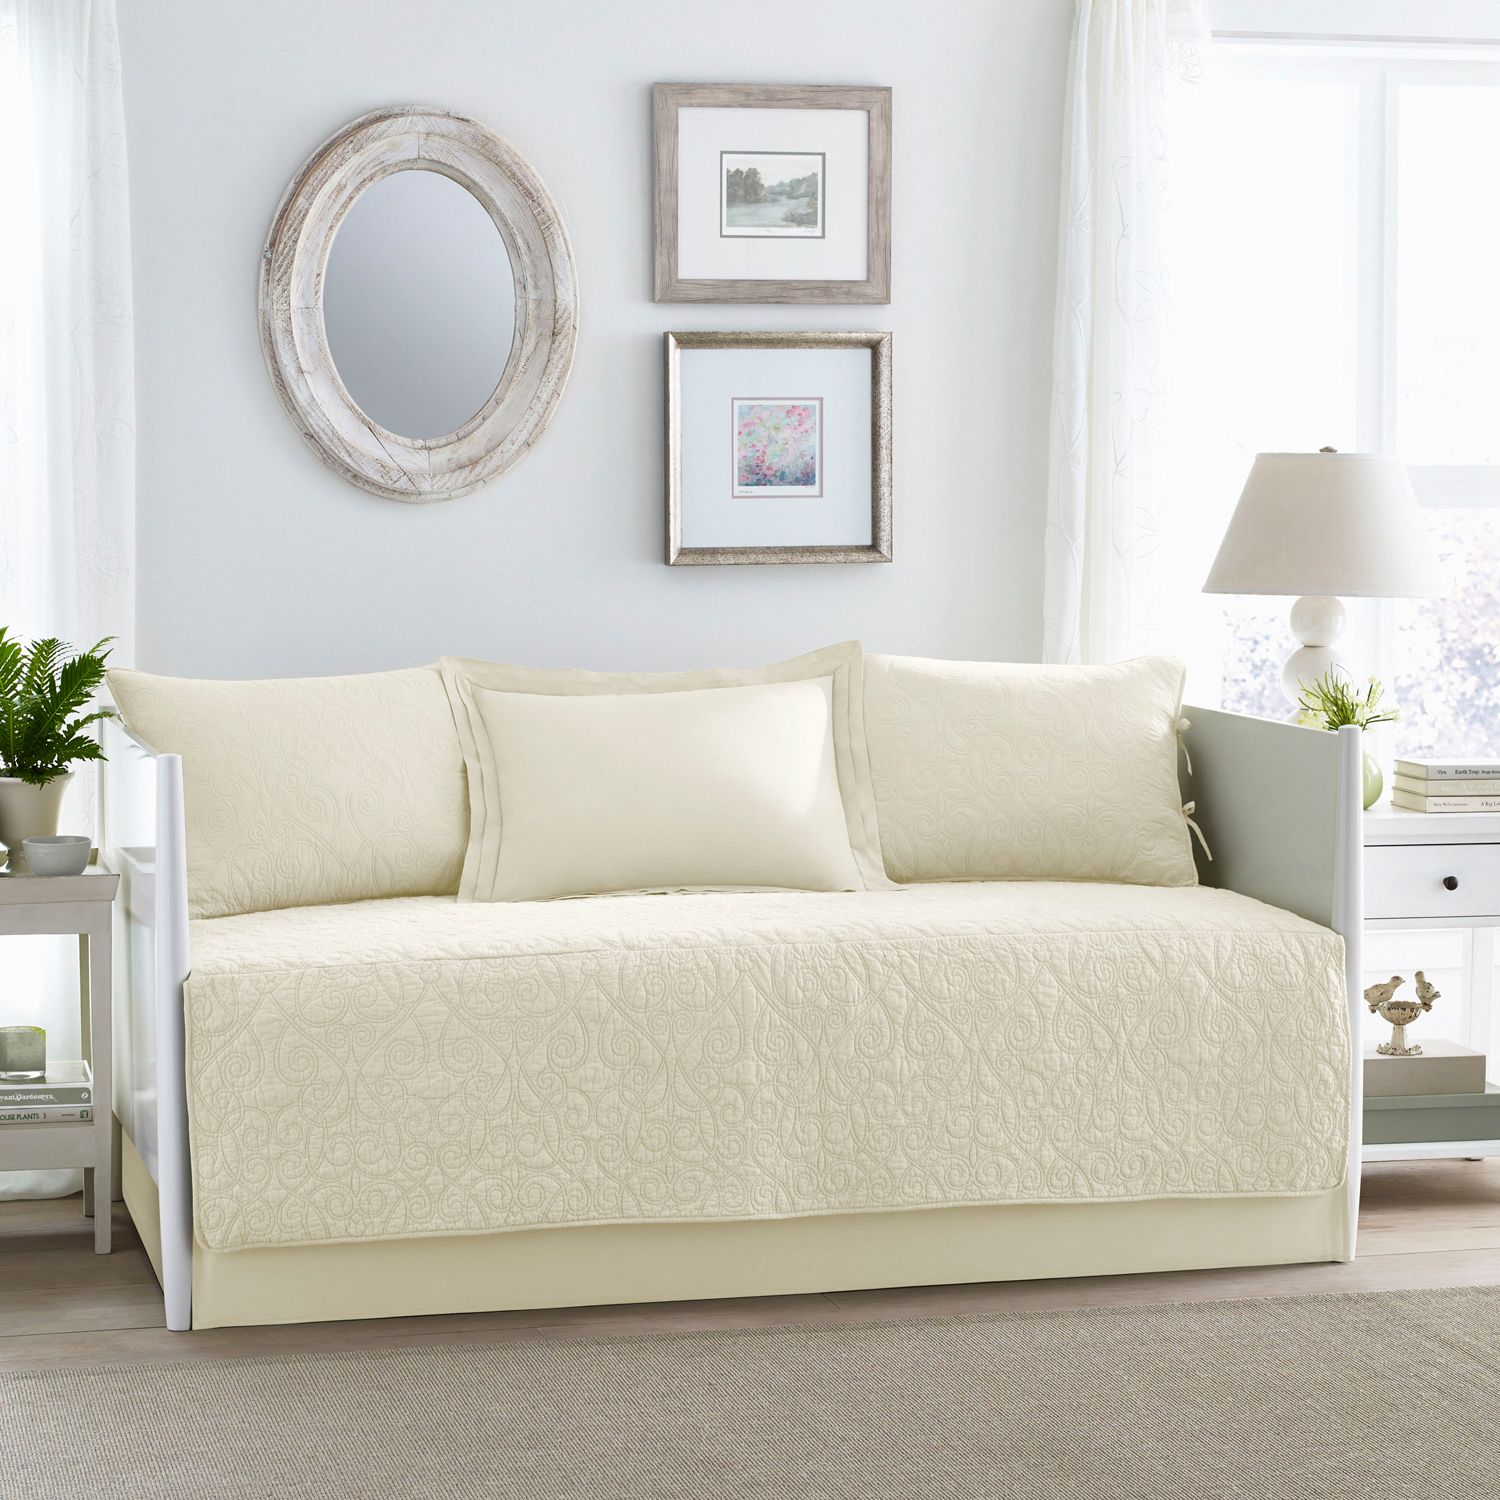 laura ashley lifestyles felicity 5piece daybed set